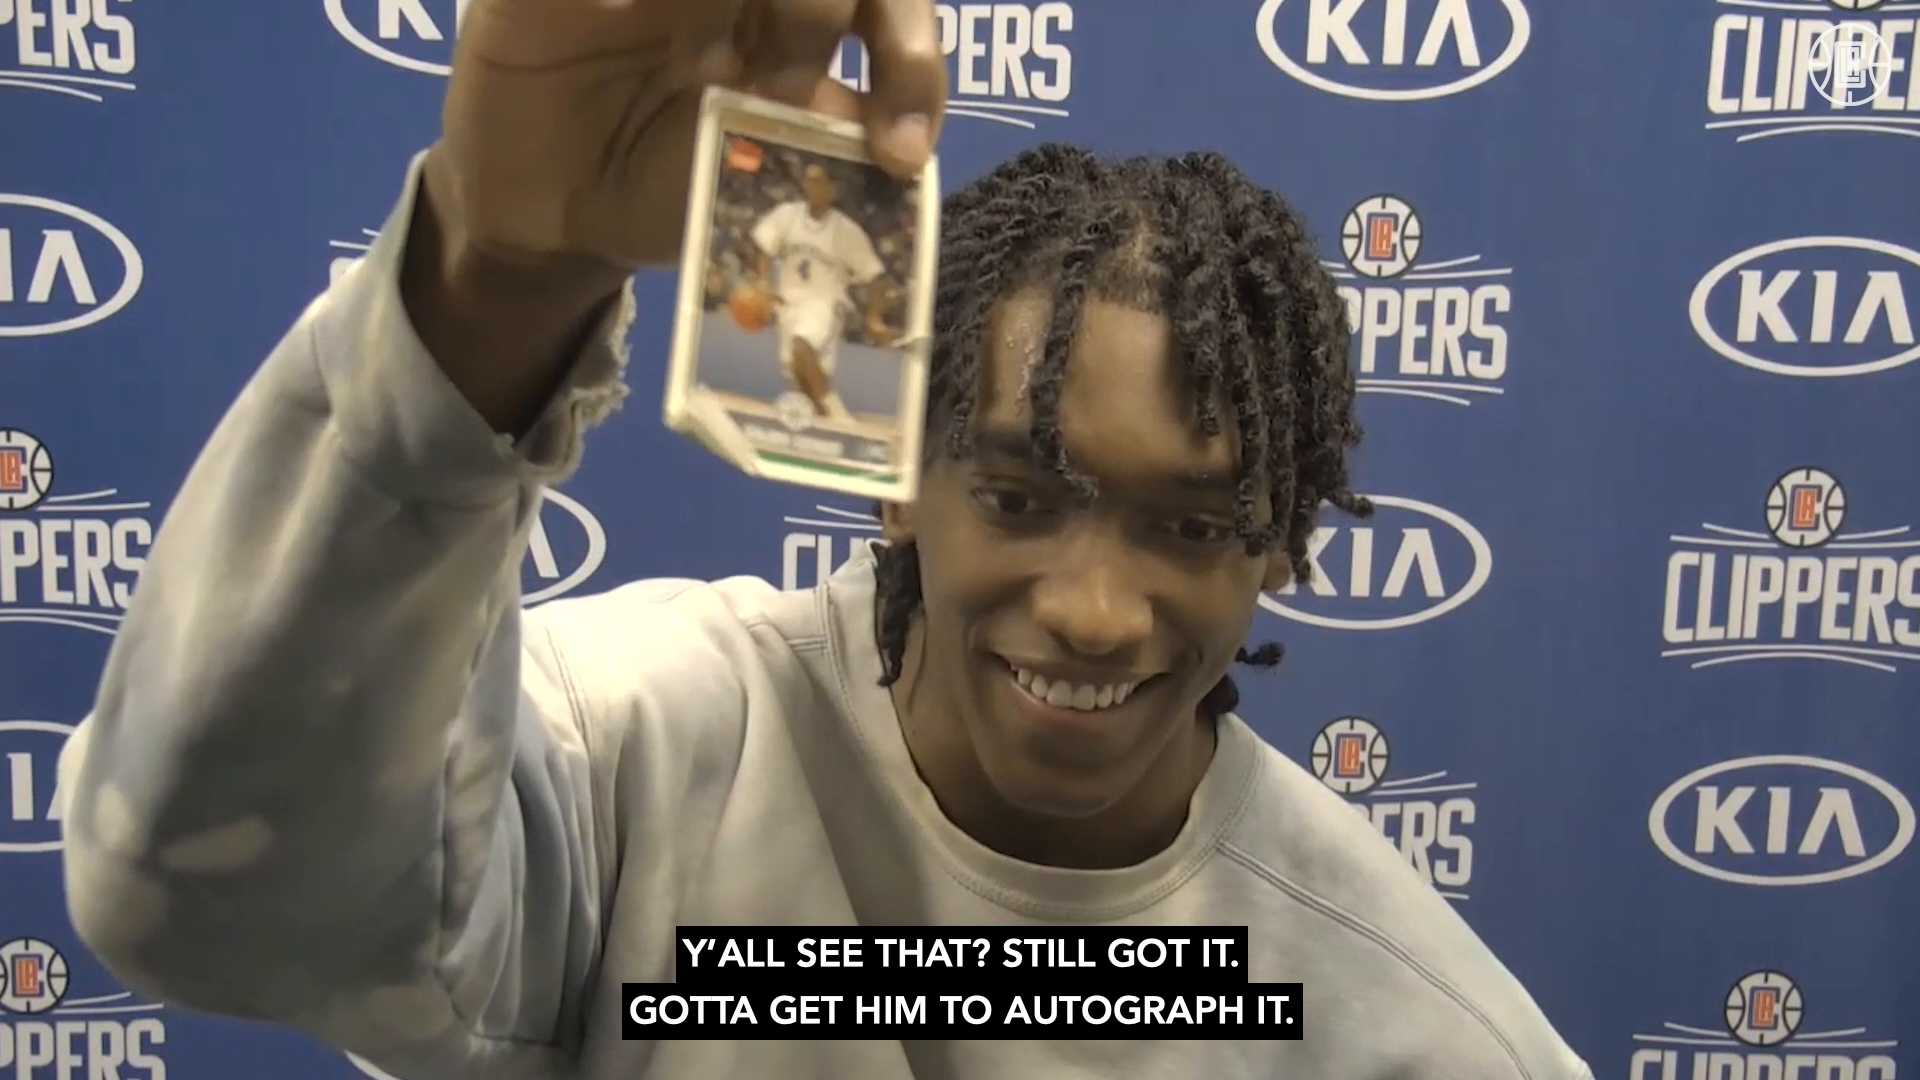 Mann on Keeping Rondo Card In Wallet | Clippers vs Spurs (3.25.21)